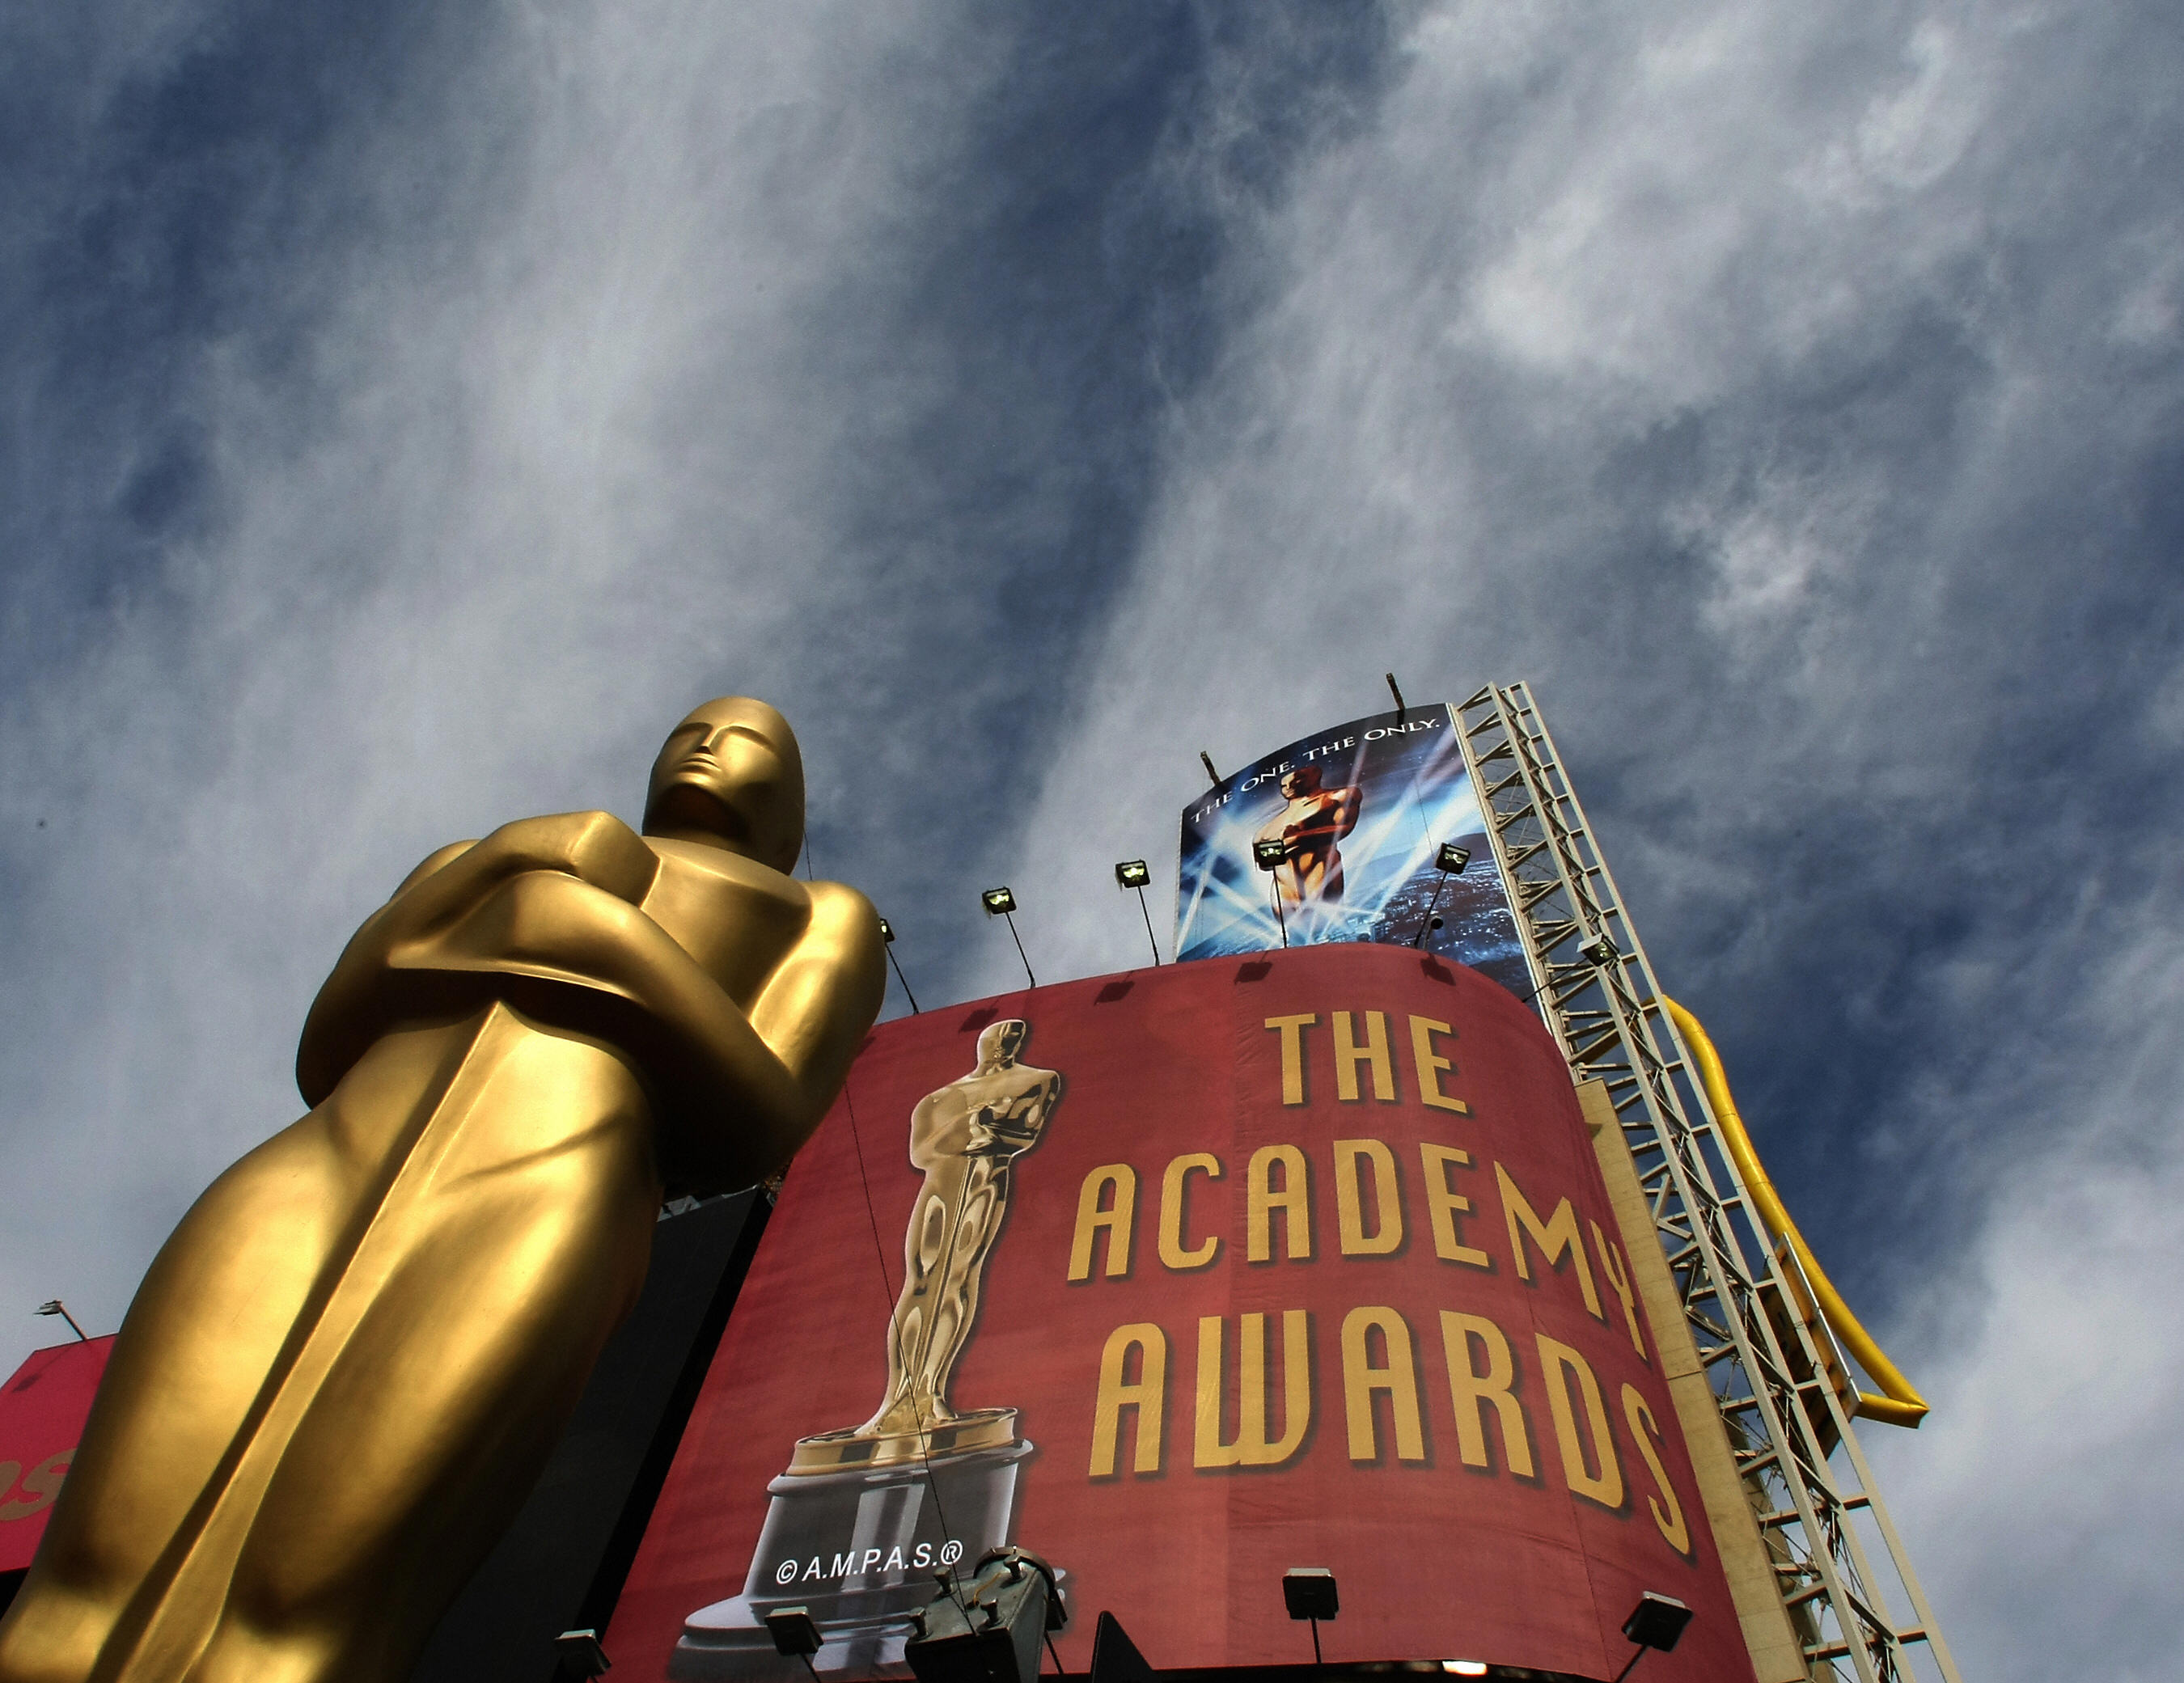 Clouds roll in as a Oscar Statue sits on